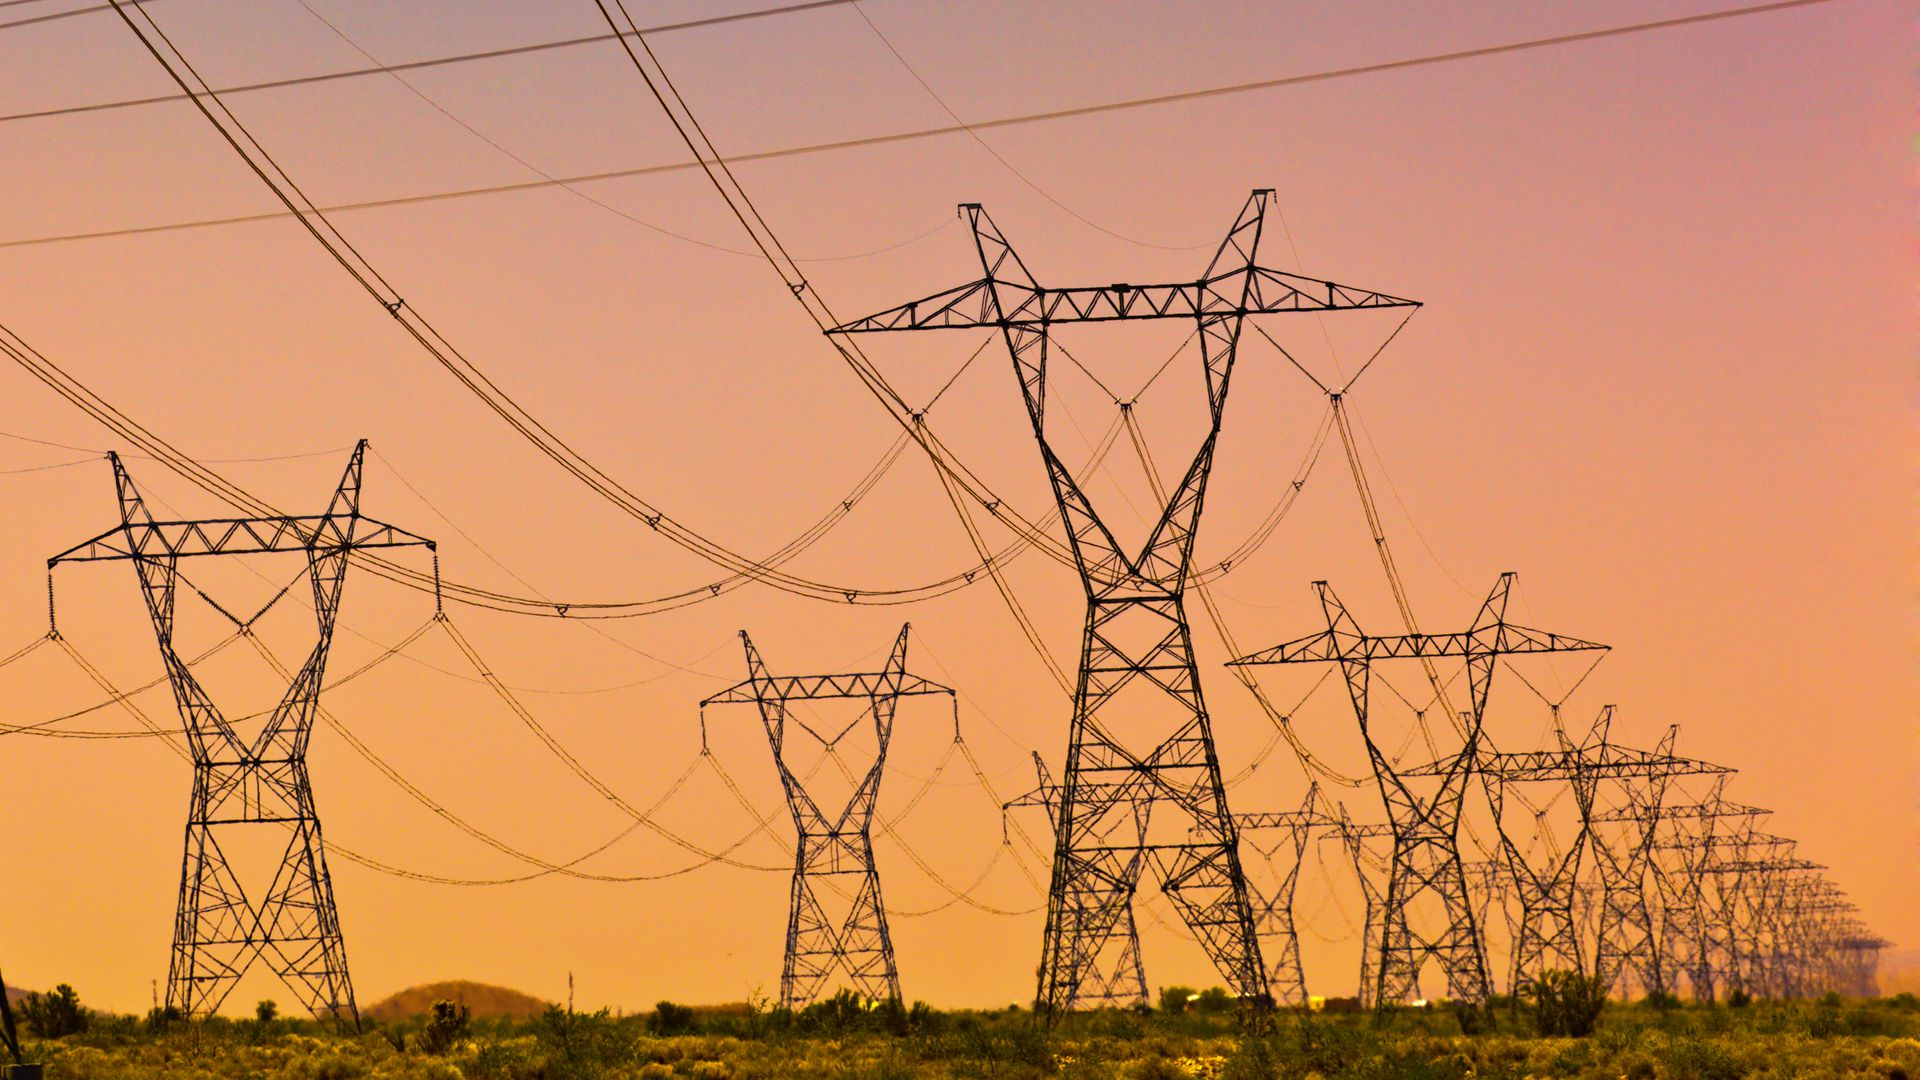 Xenotime, the hackers behind destructive malware, is doing recon on U.S. electric utilities